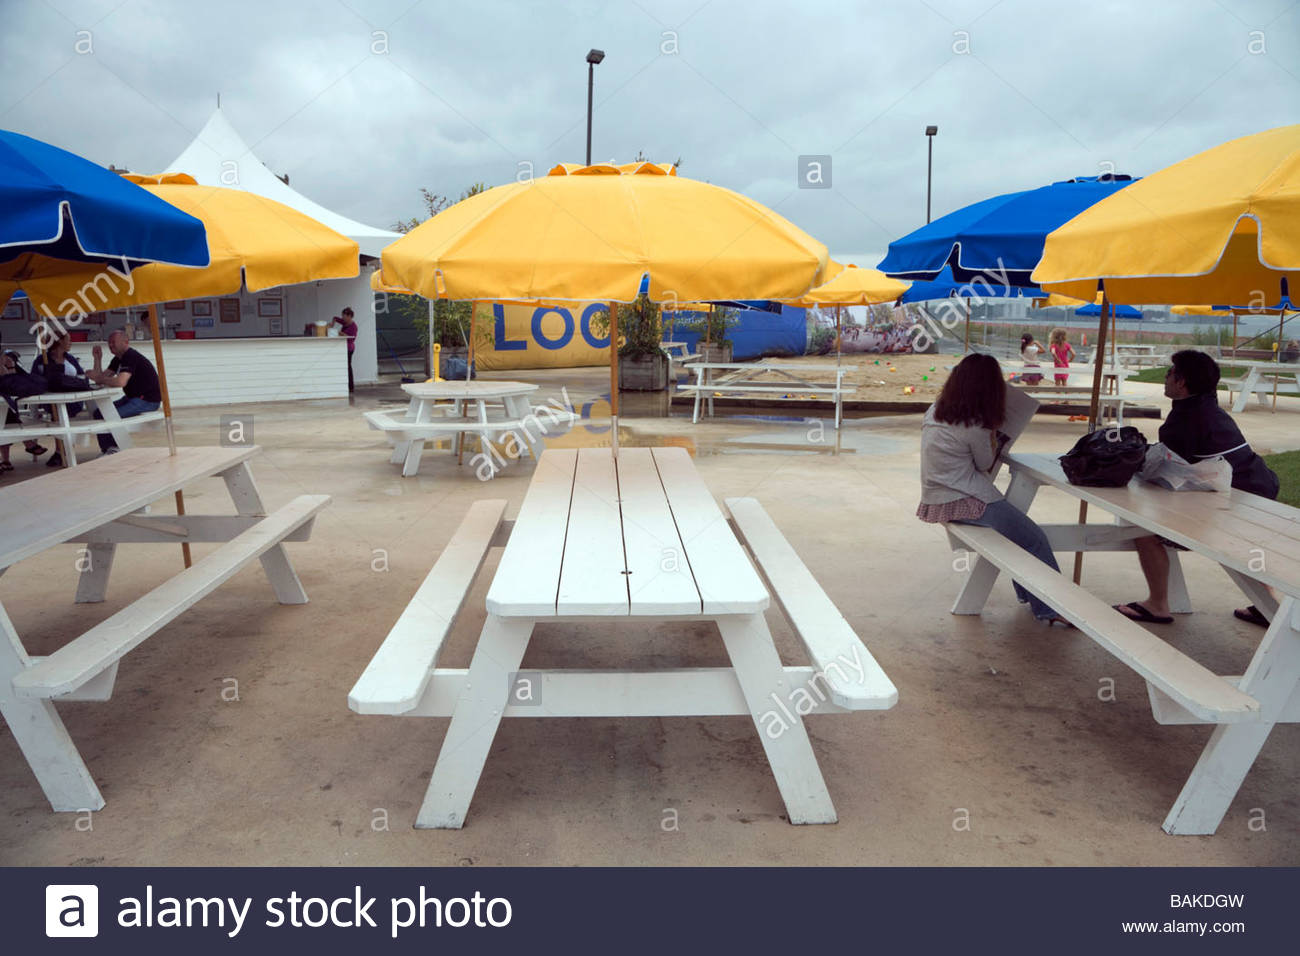 a rained away beach day - Stock Image